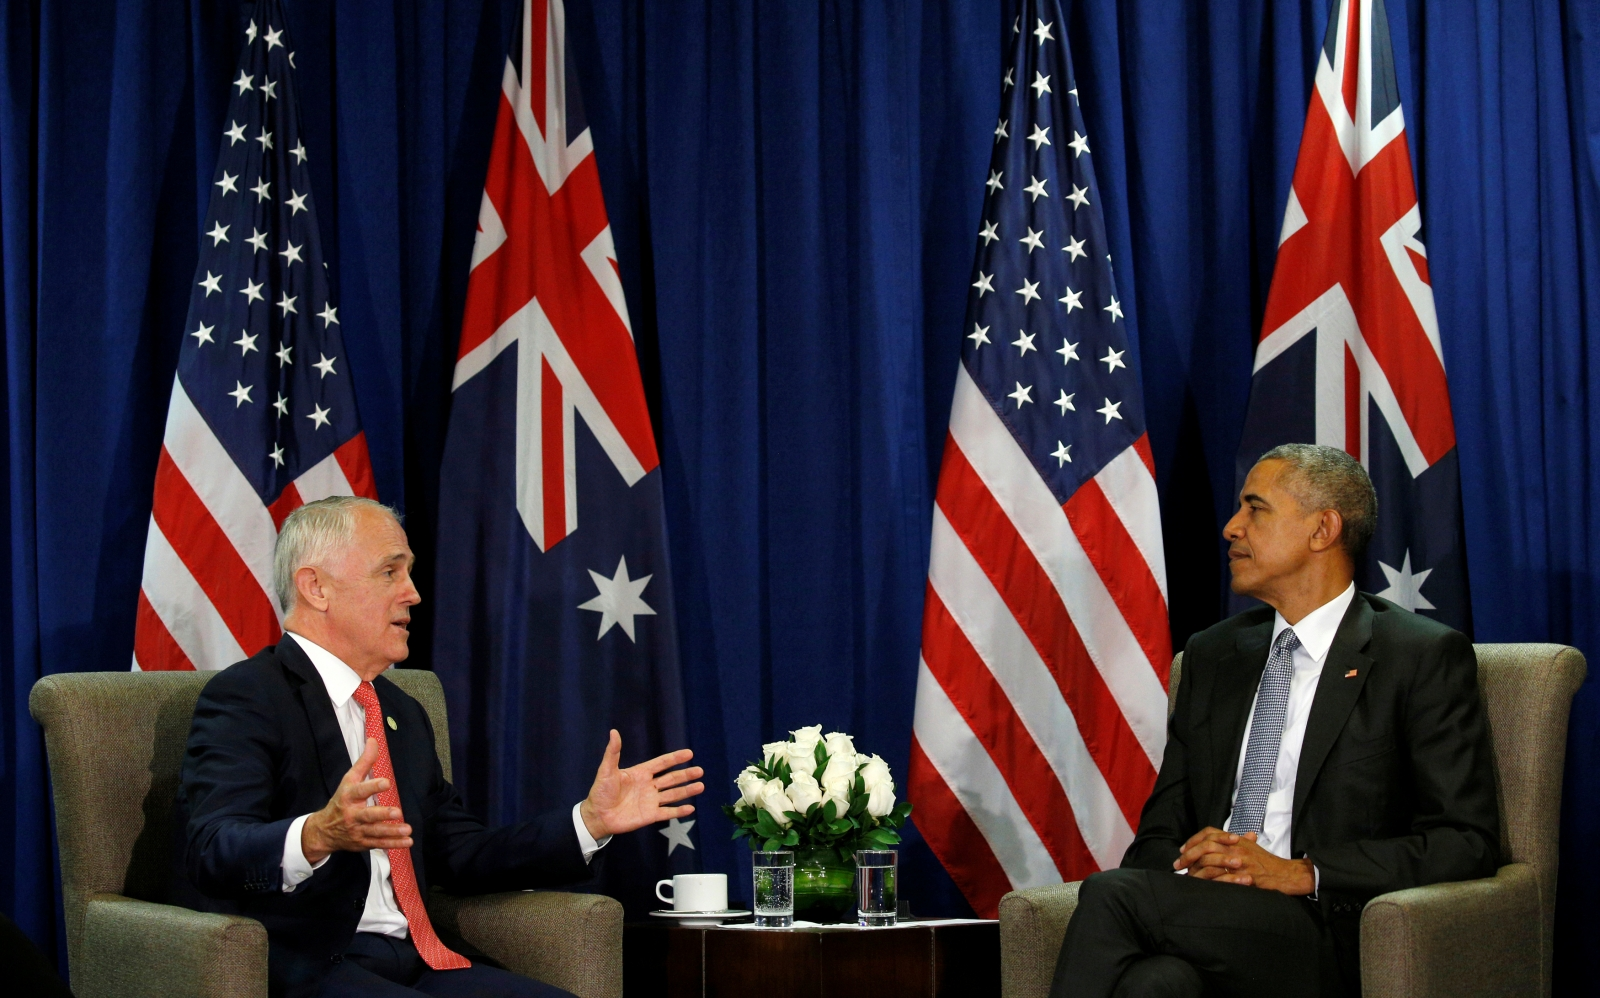 US President Barack Obama and Australian Prime Minister Malcolm Turnbull